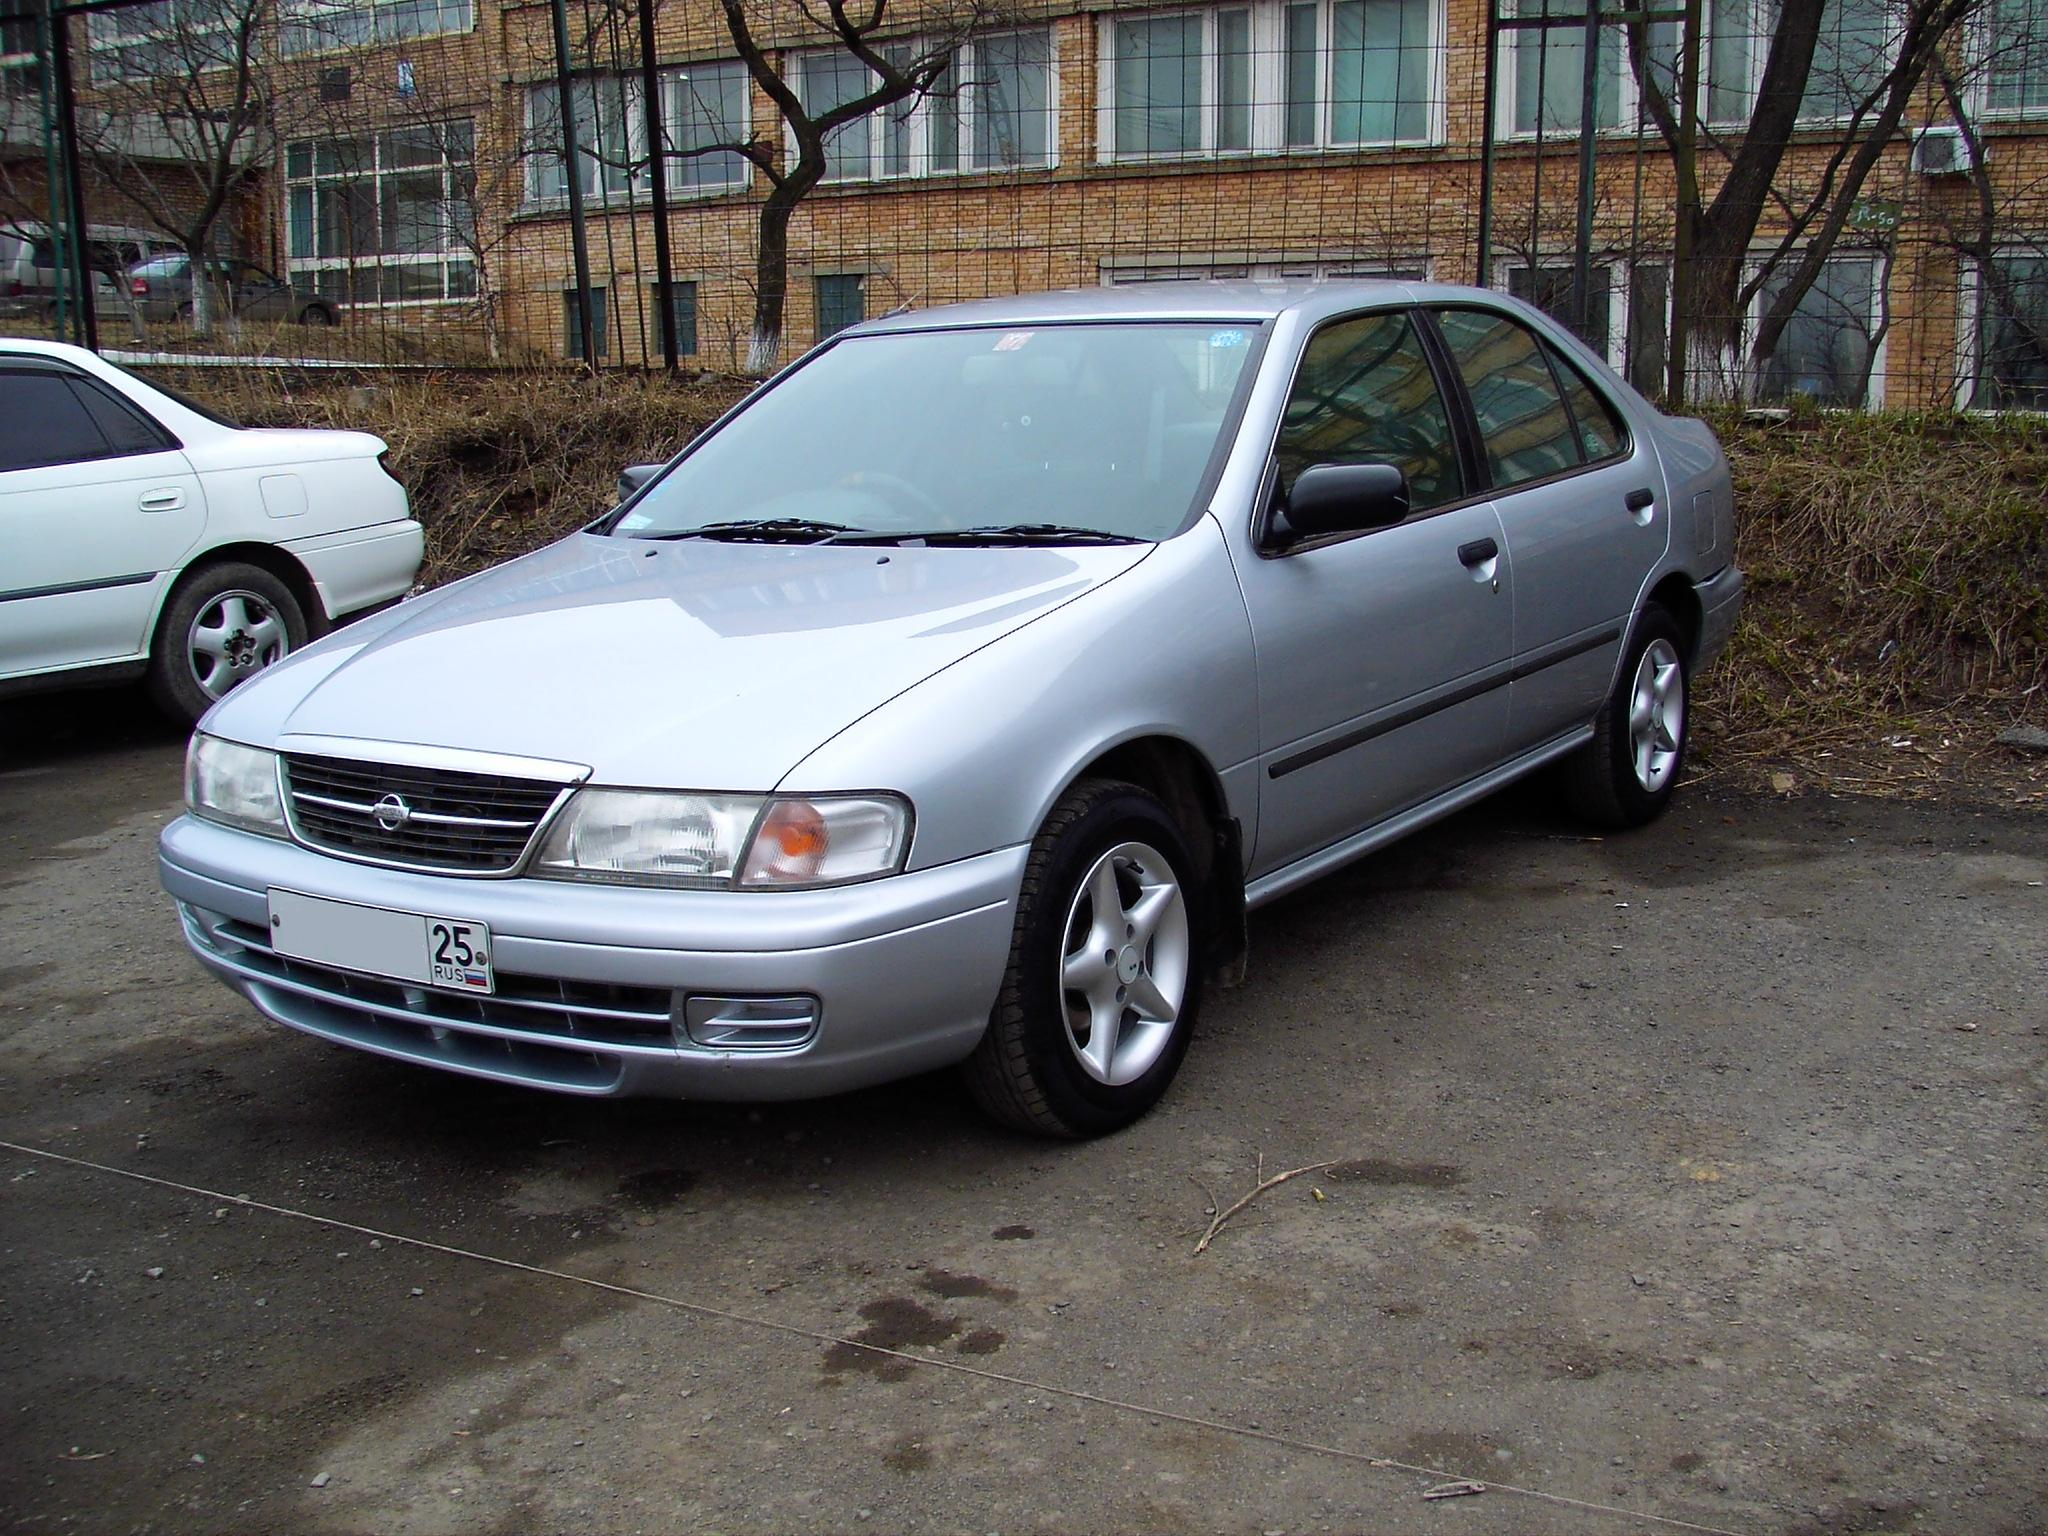 1997 Nissan Sunny Pictures, 1300cc., Gasoline, FF, Manual ...